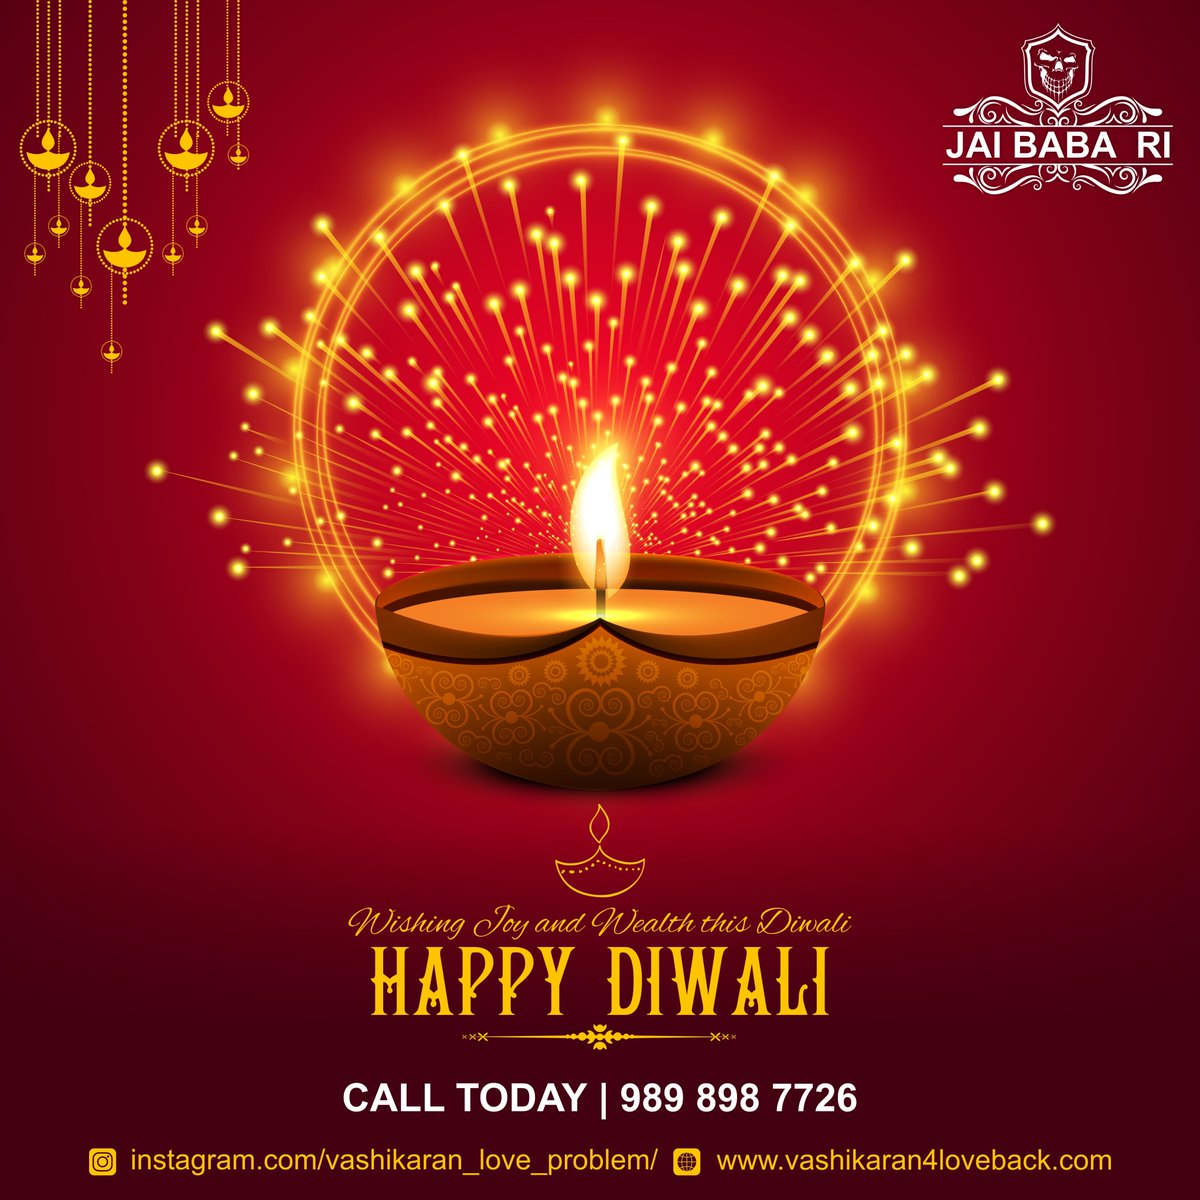 May millions of lamps illuminate your life with endless joy, prosperity, health and wealth forever. Wishing you and your family a happy and safe Diwali...#happydiwali #happydiwali2020 #happydiwalifloks #happydiwalieveryone #happydiwalivibes #diwalicelebration #diwaliadvertising